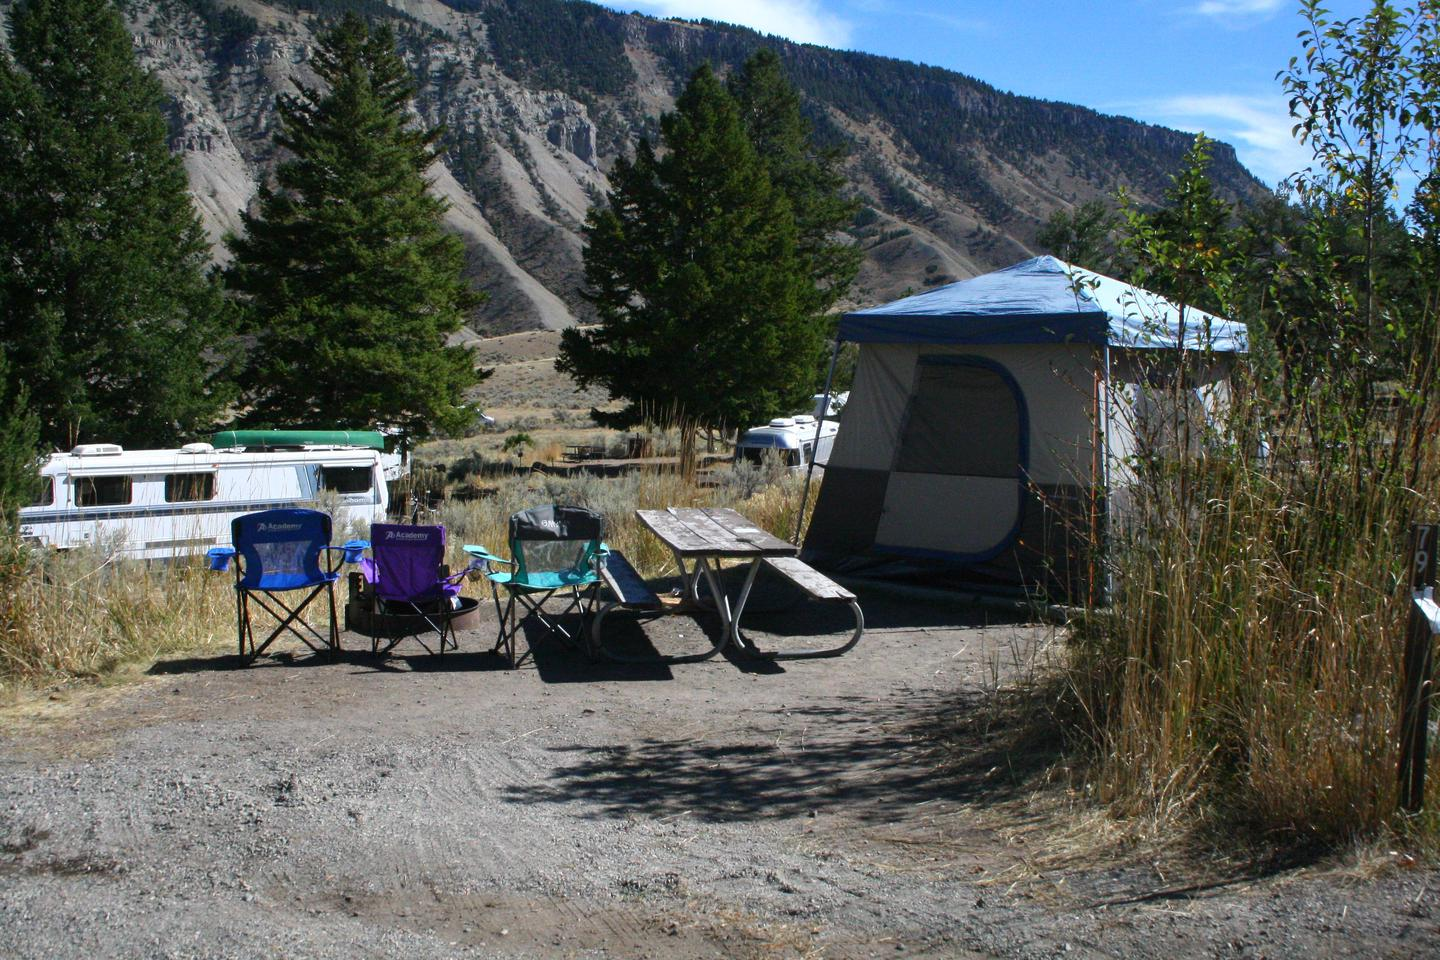 Mammoth Hot Springs Campground Site 79Mammoth Campsite #79, looking east